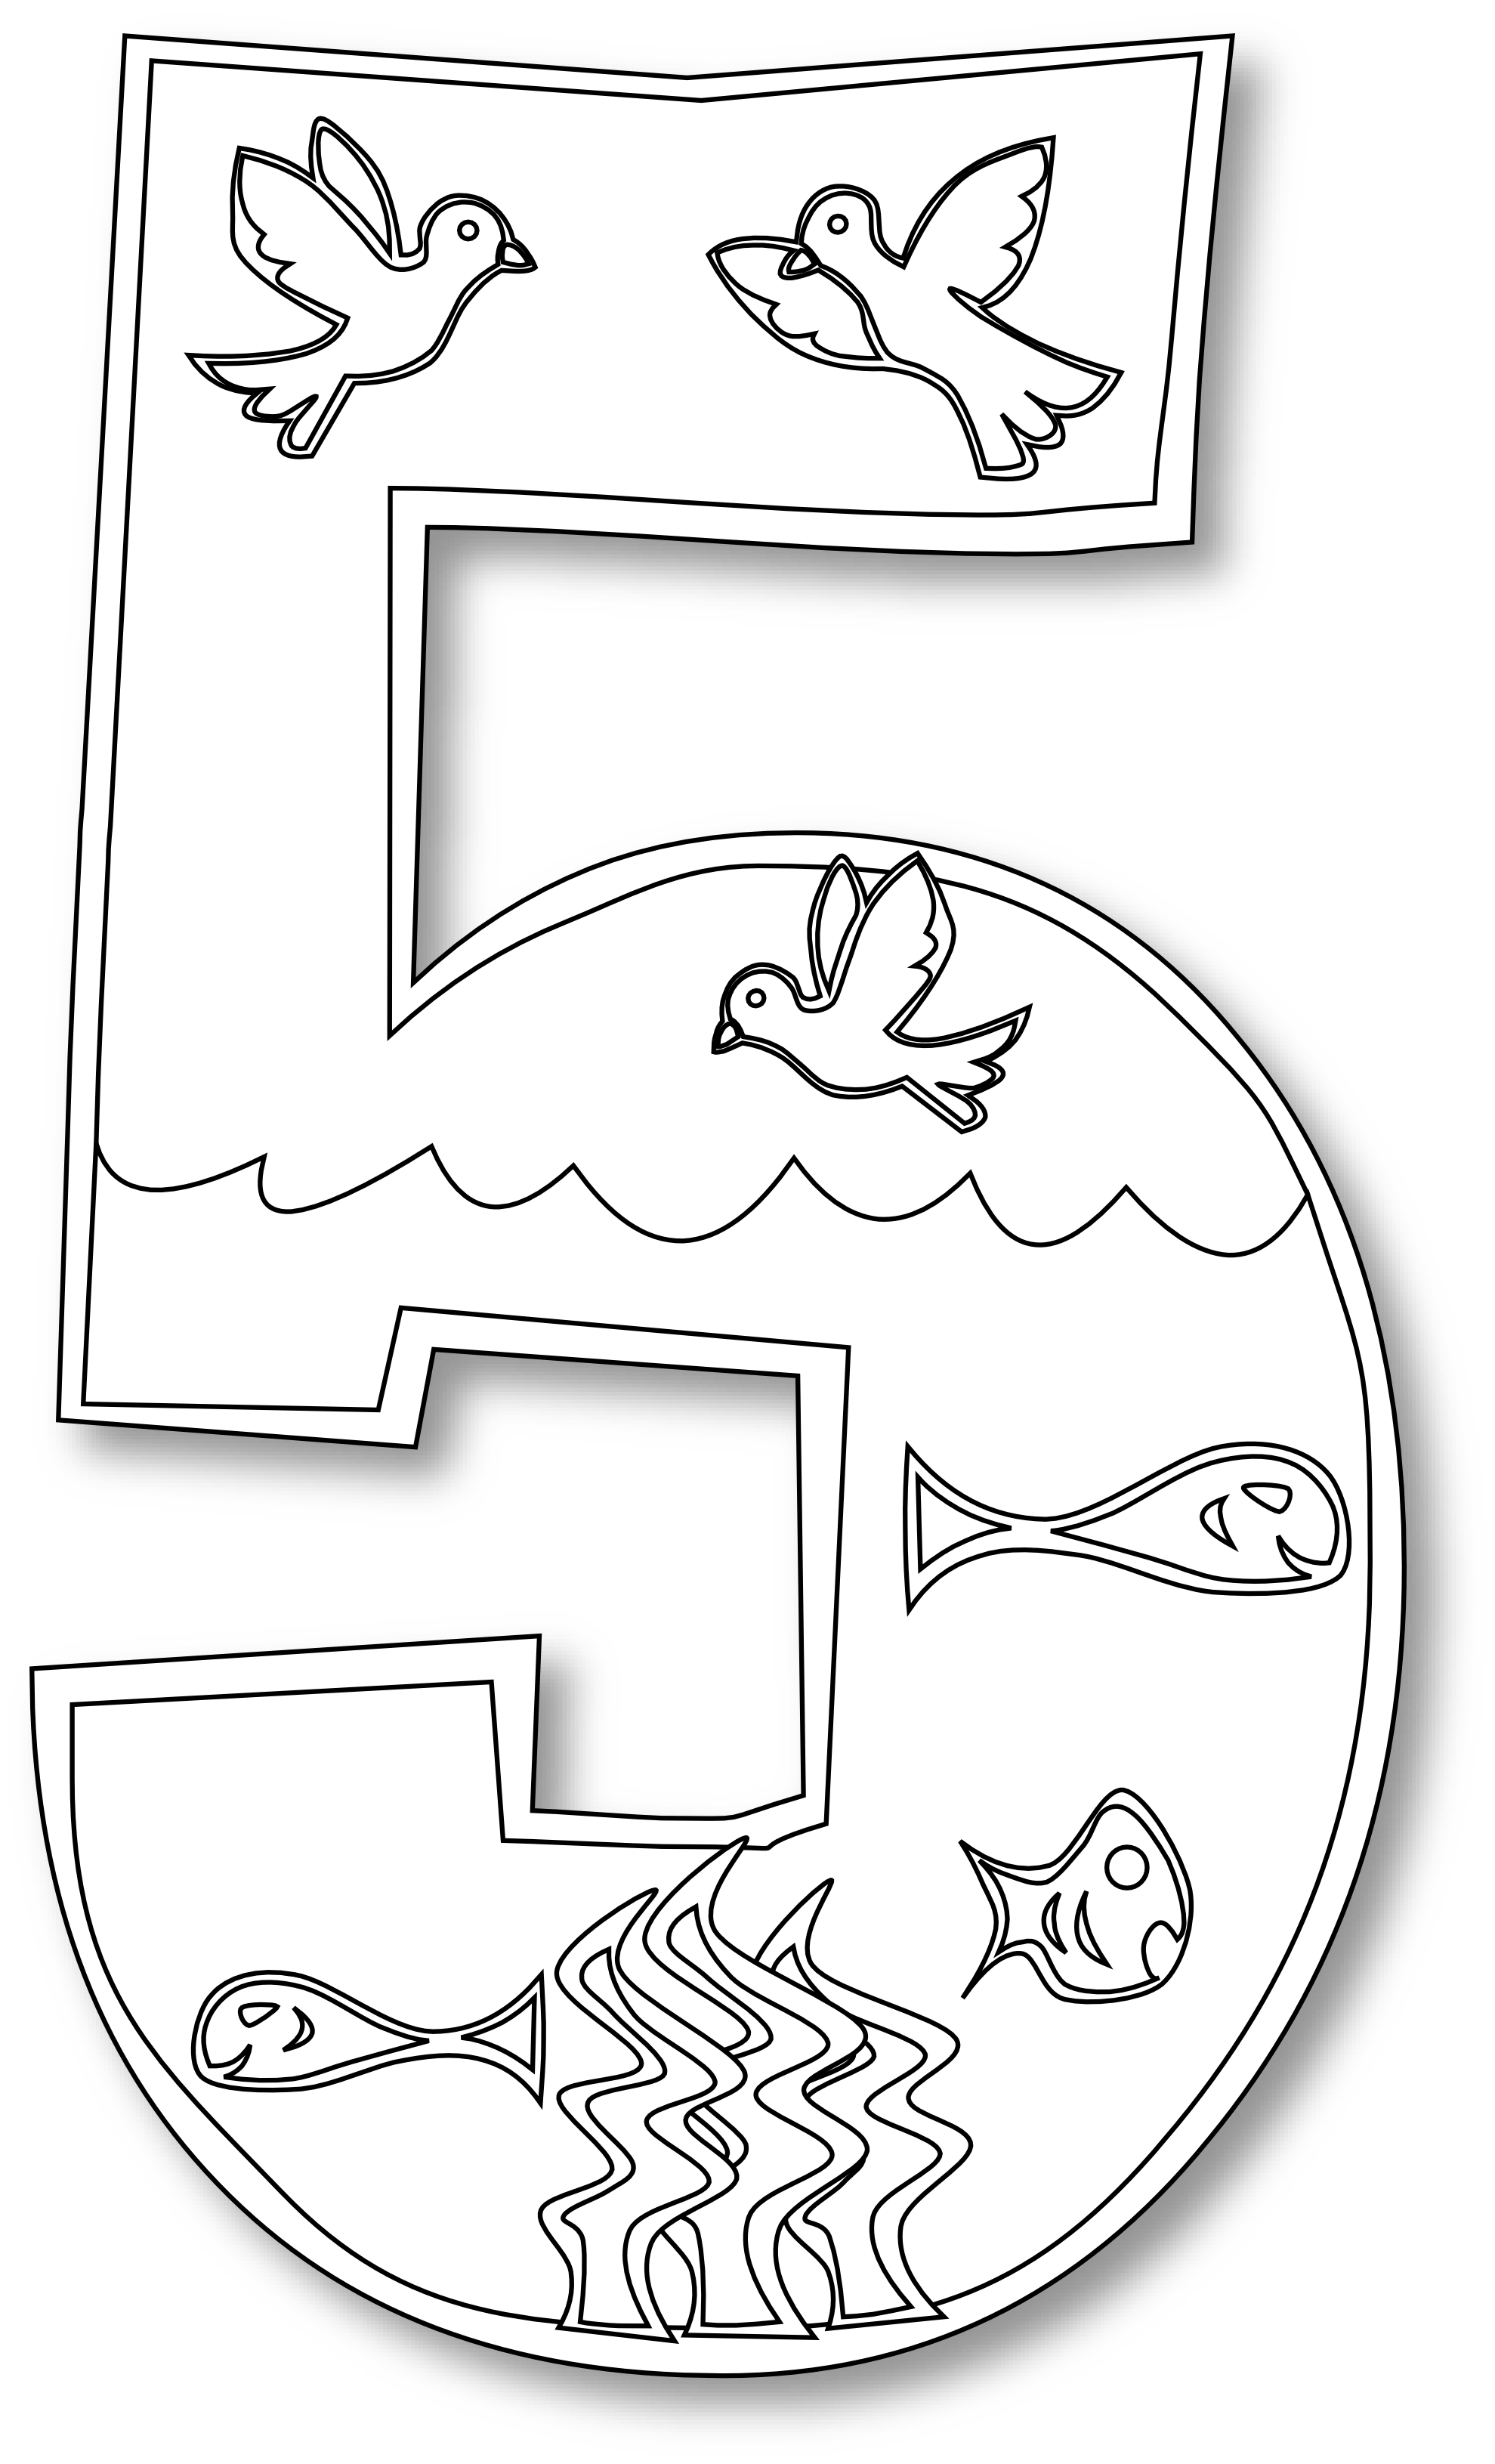 5 loaves and 2 fish clipart black and white image black and white library (1979×3261) | DIY for kids image black and white library